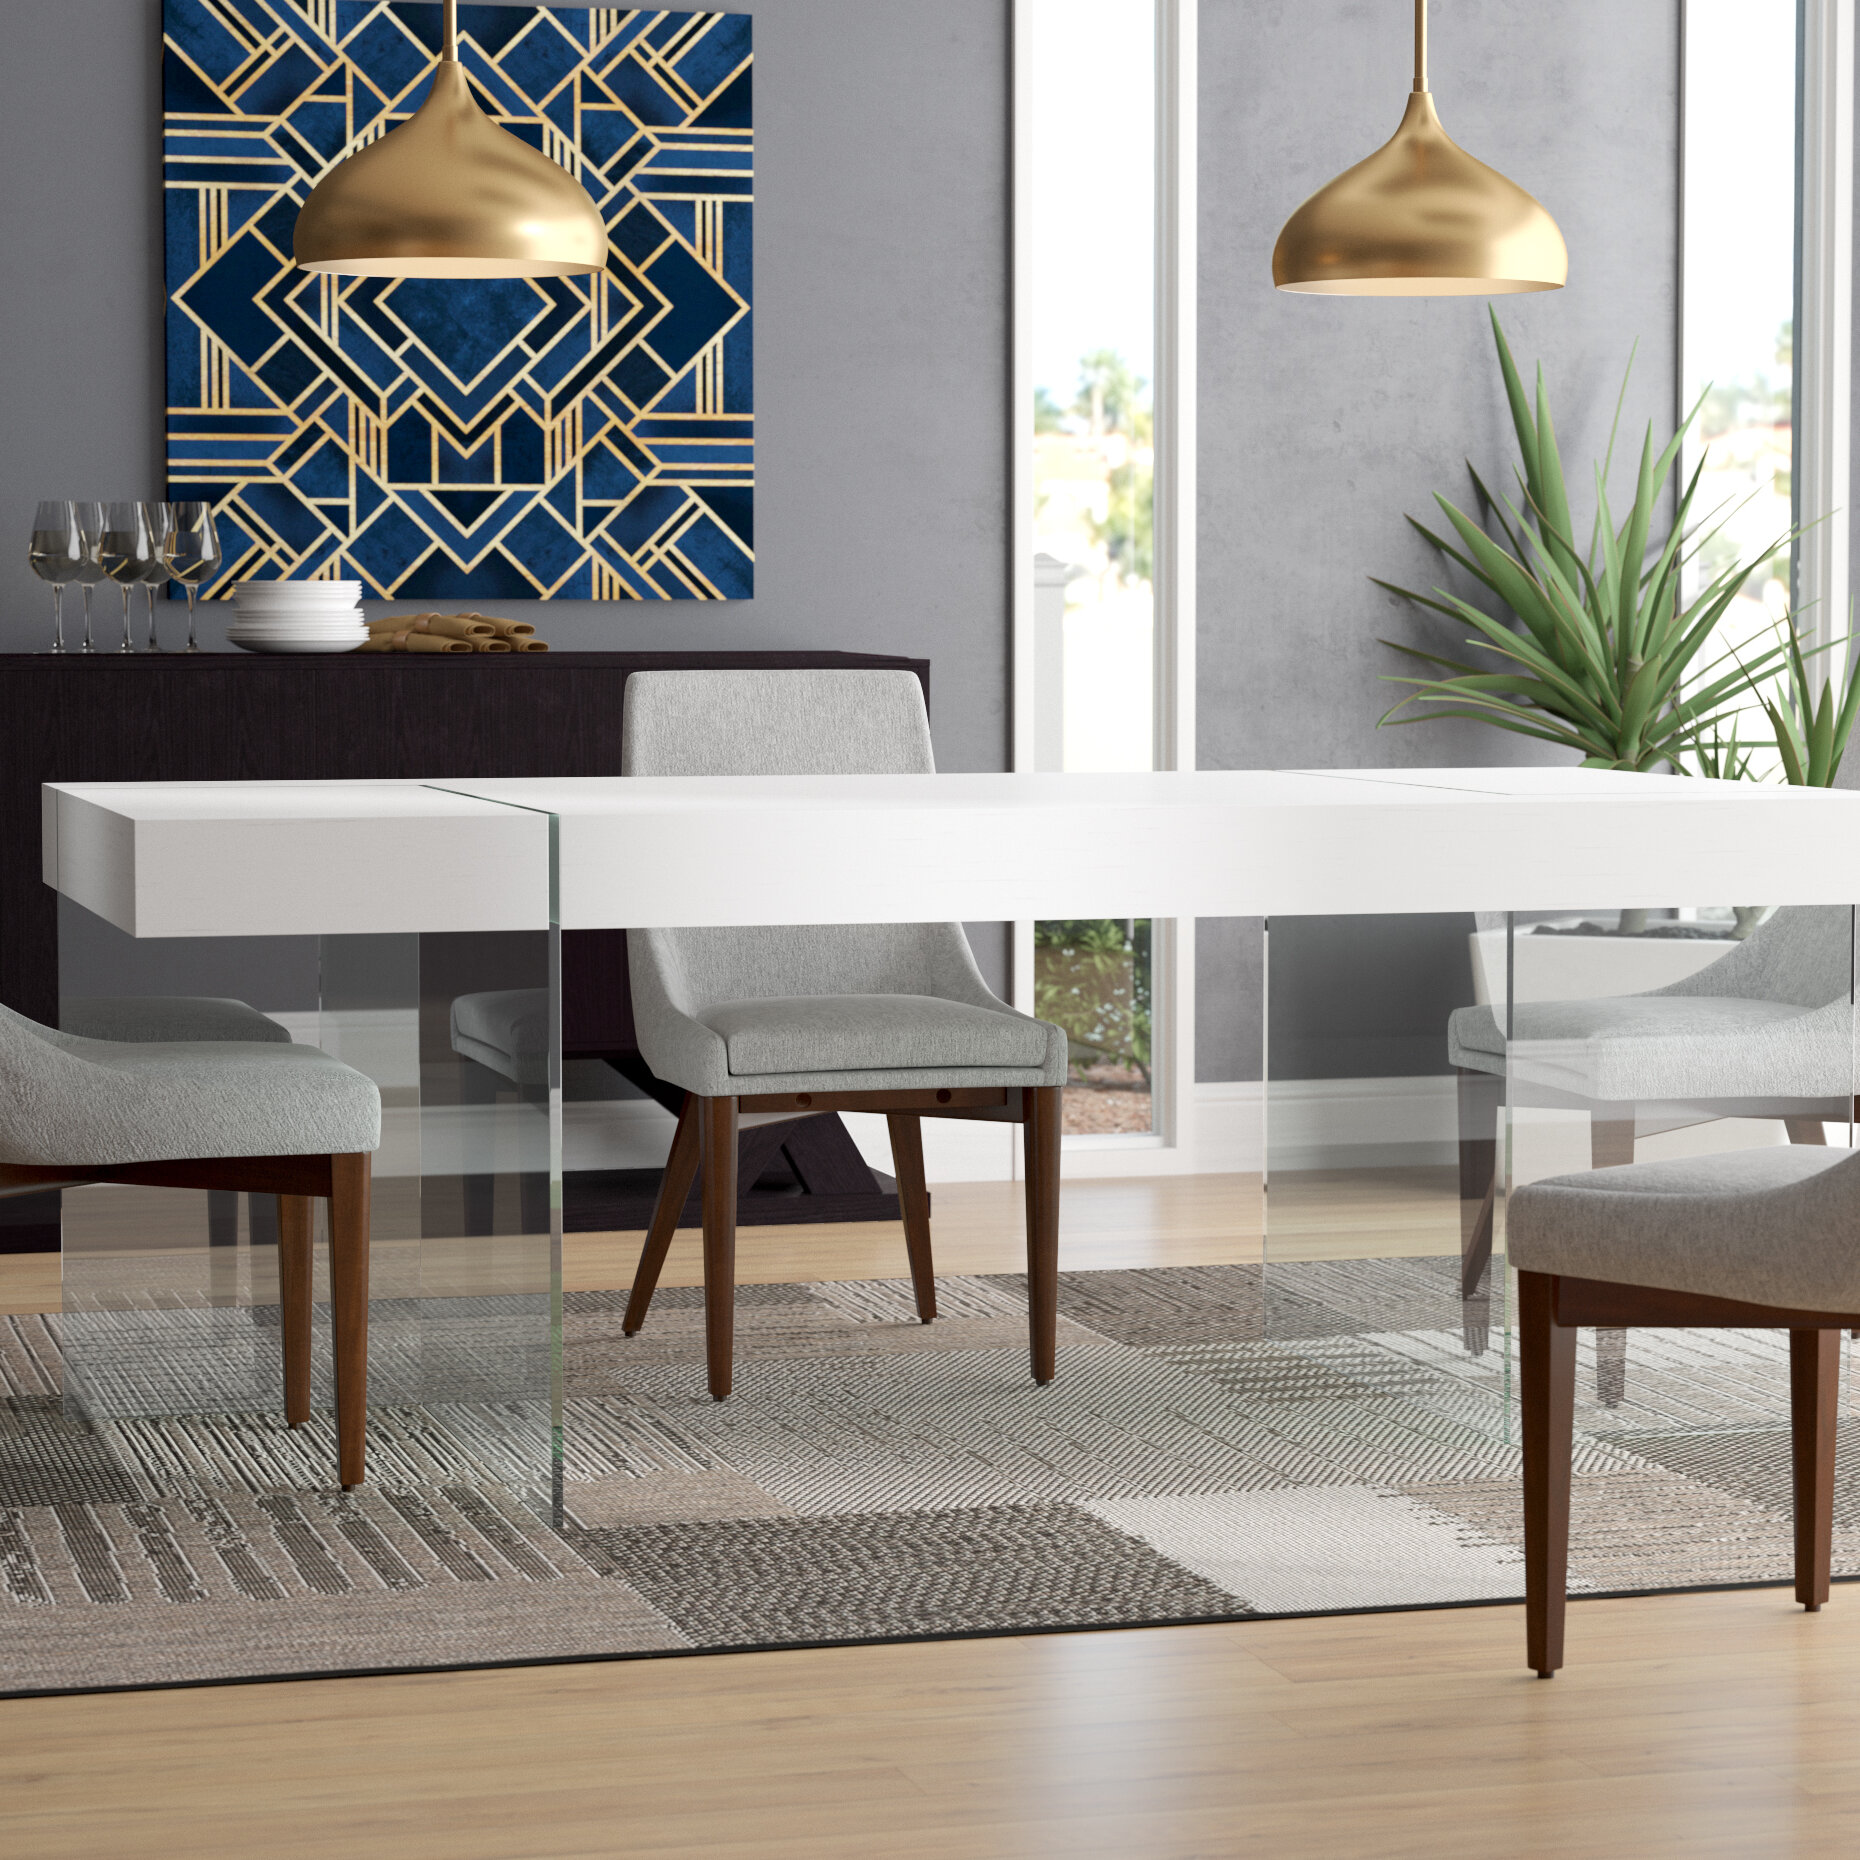 Wade logan domenica modern dining table reviews wayfair